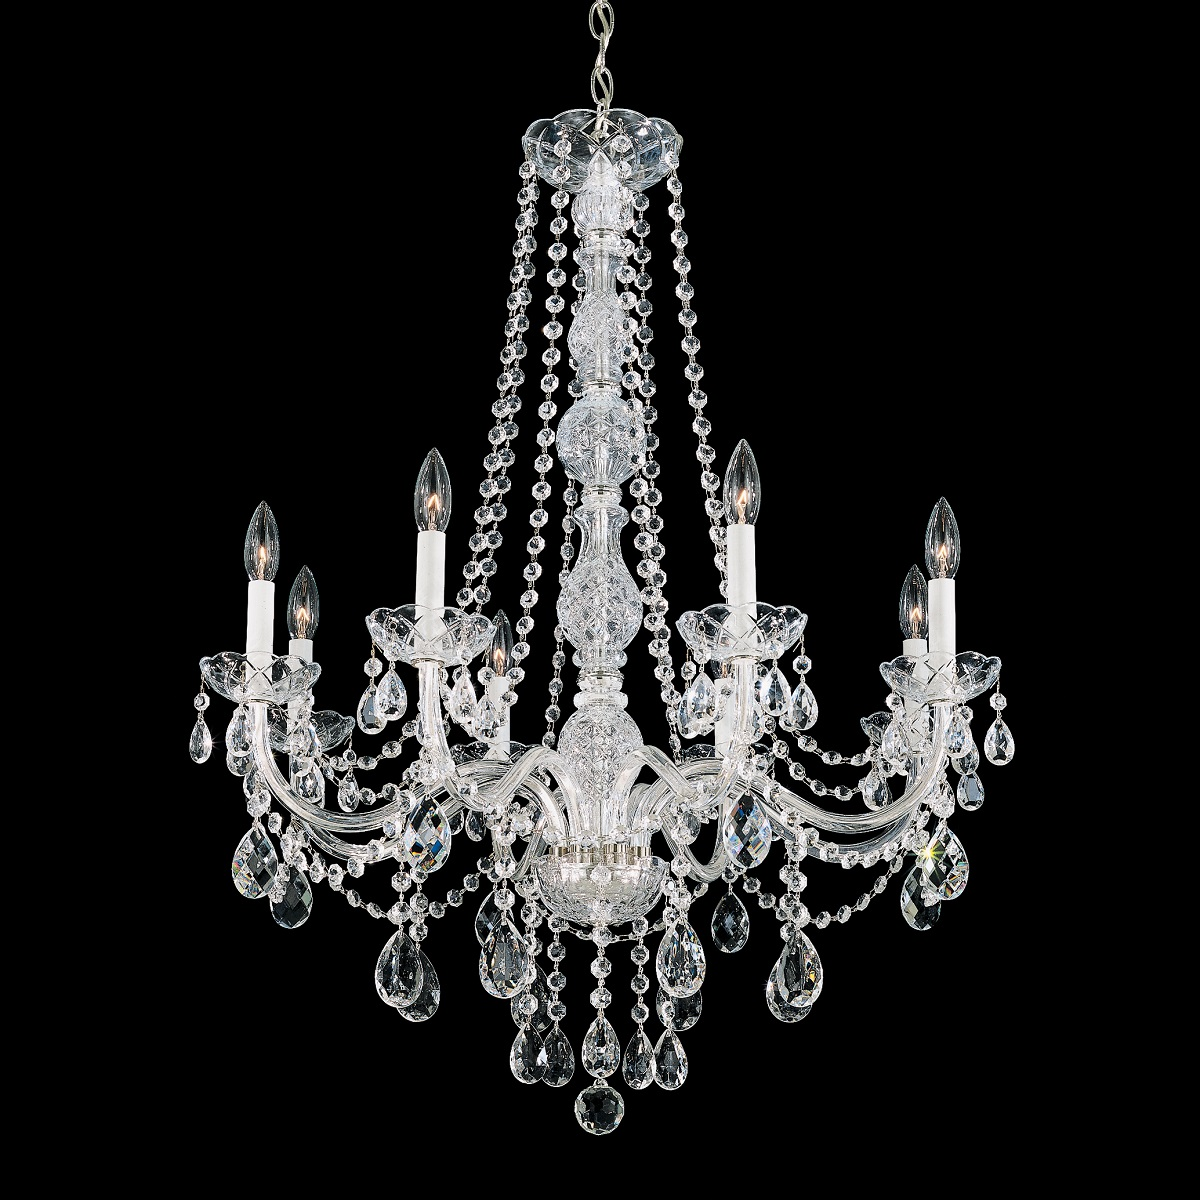 Schonbek Arlington Contemporary Crystal Chandeliers Brooklyn,New York  by Accentuations Brand